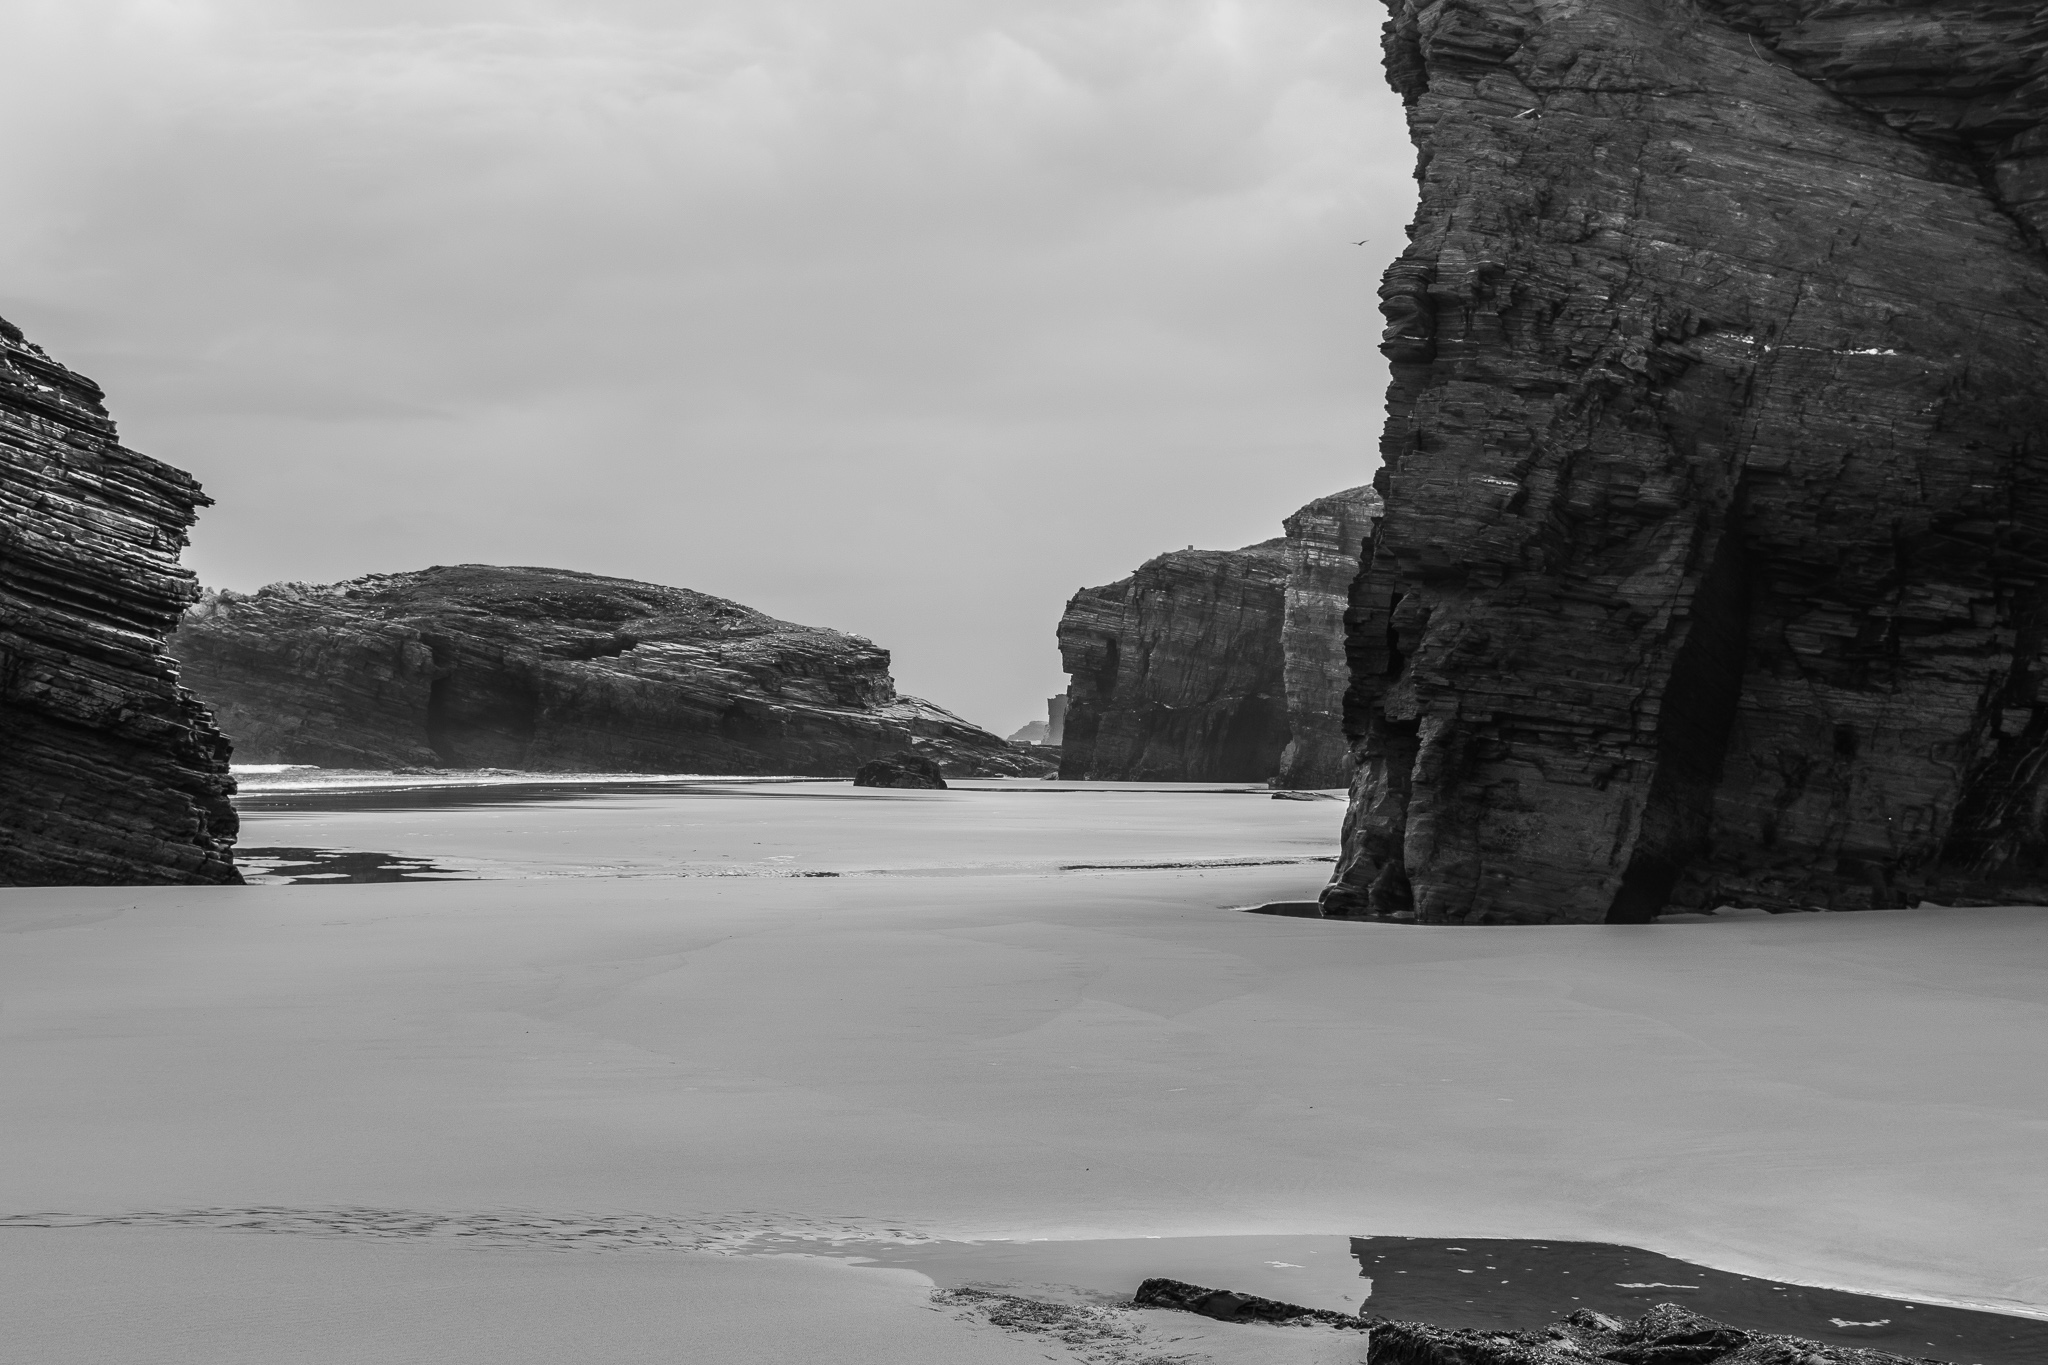 The Beach of the Cathedrals (Beach of Augas Santas), located in the municipality of Ribadeo, is a group of cliffs of about 30m height located at the edge of the sea, that conform a landscape and a beach declared Natural Monument. Visible only at low tide, it shows its arches, grottos and sand corridors at the foot of an area of slate cliffs, while at high tide the water covers all of the sand.